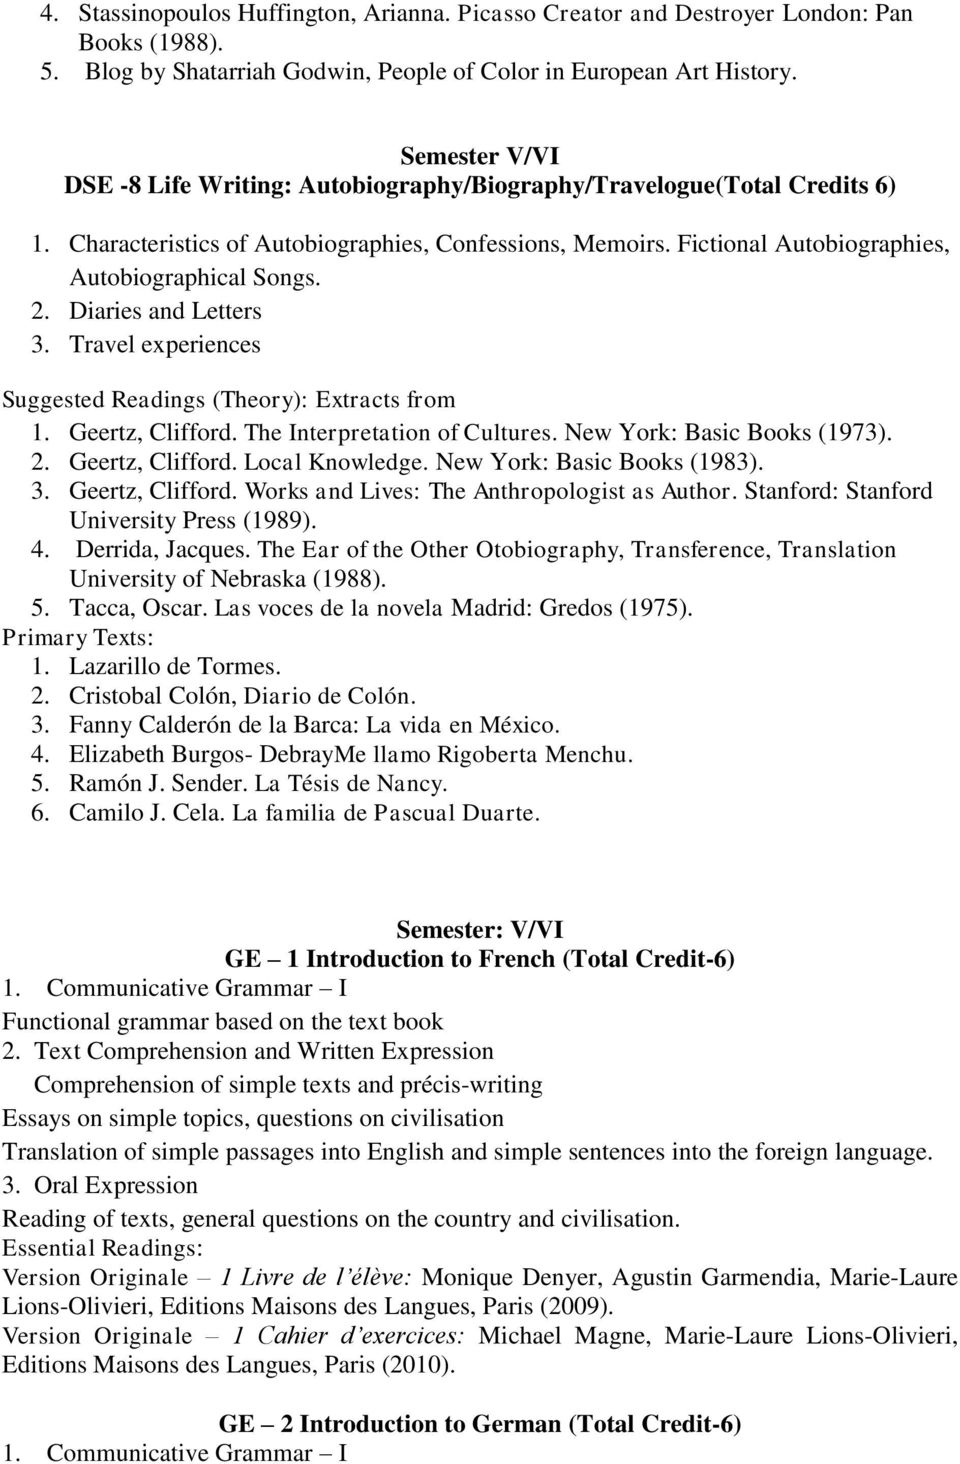 2. Diaries and Letters 3. Travel experiences Suggested Readings (Theory): Extracts from 1. Geertz, Clifford. The Interpretation of Cultures. New York: Basic Books (1973). 2. Geertz, Clifford. Local Knowledge.